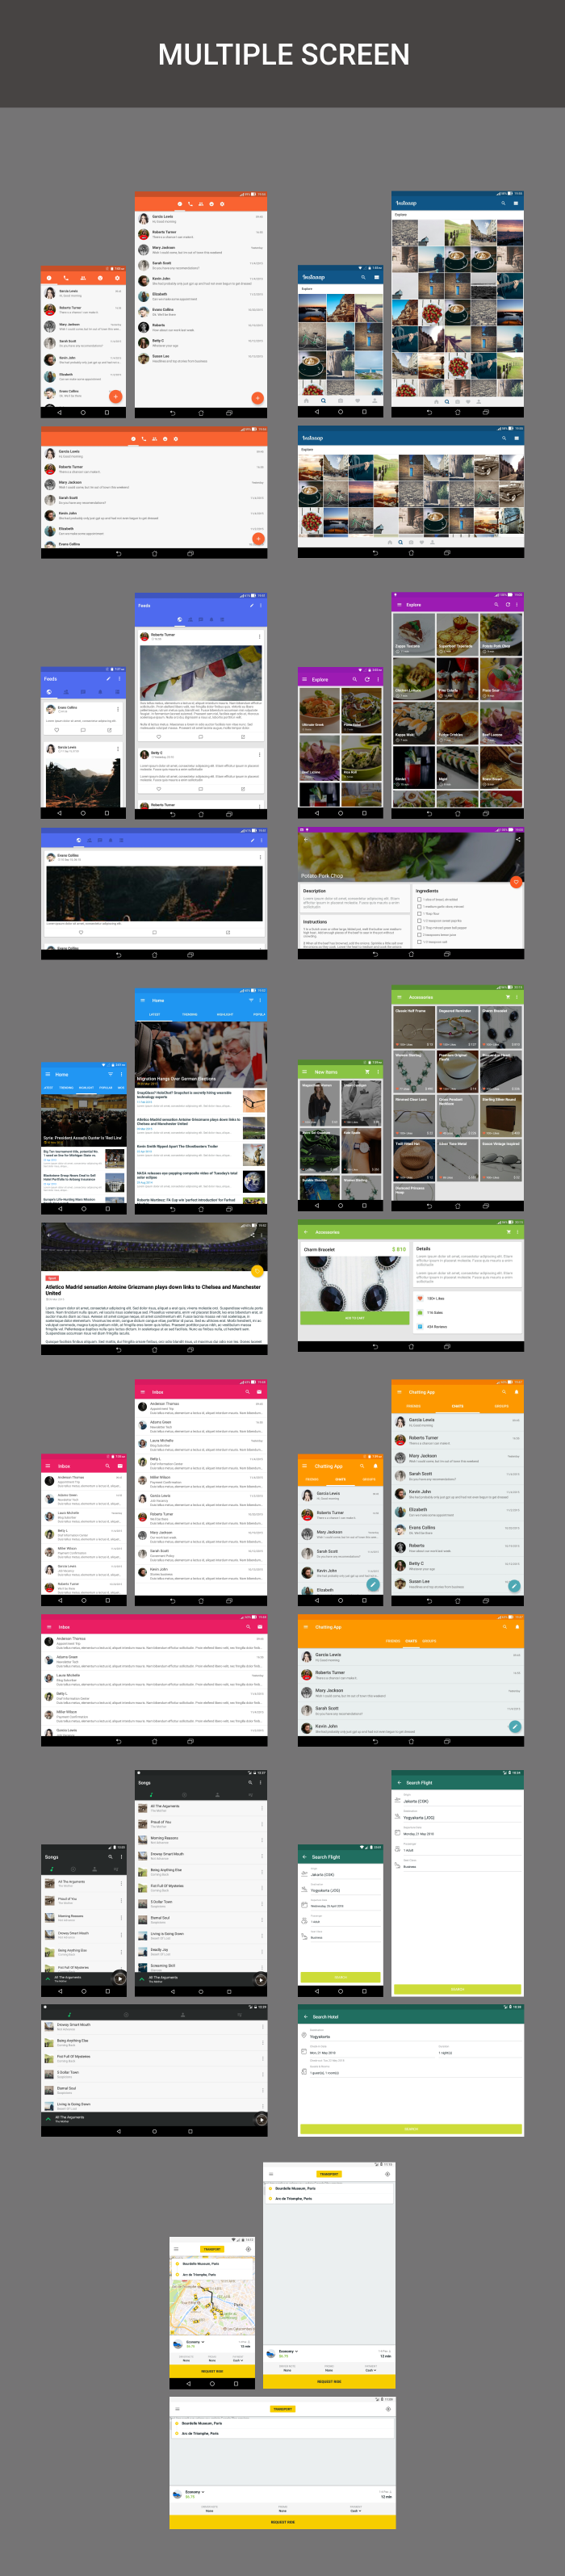 Android Material UI Template 4.0 - 39